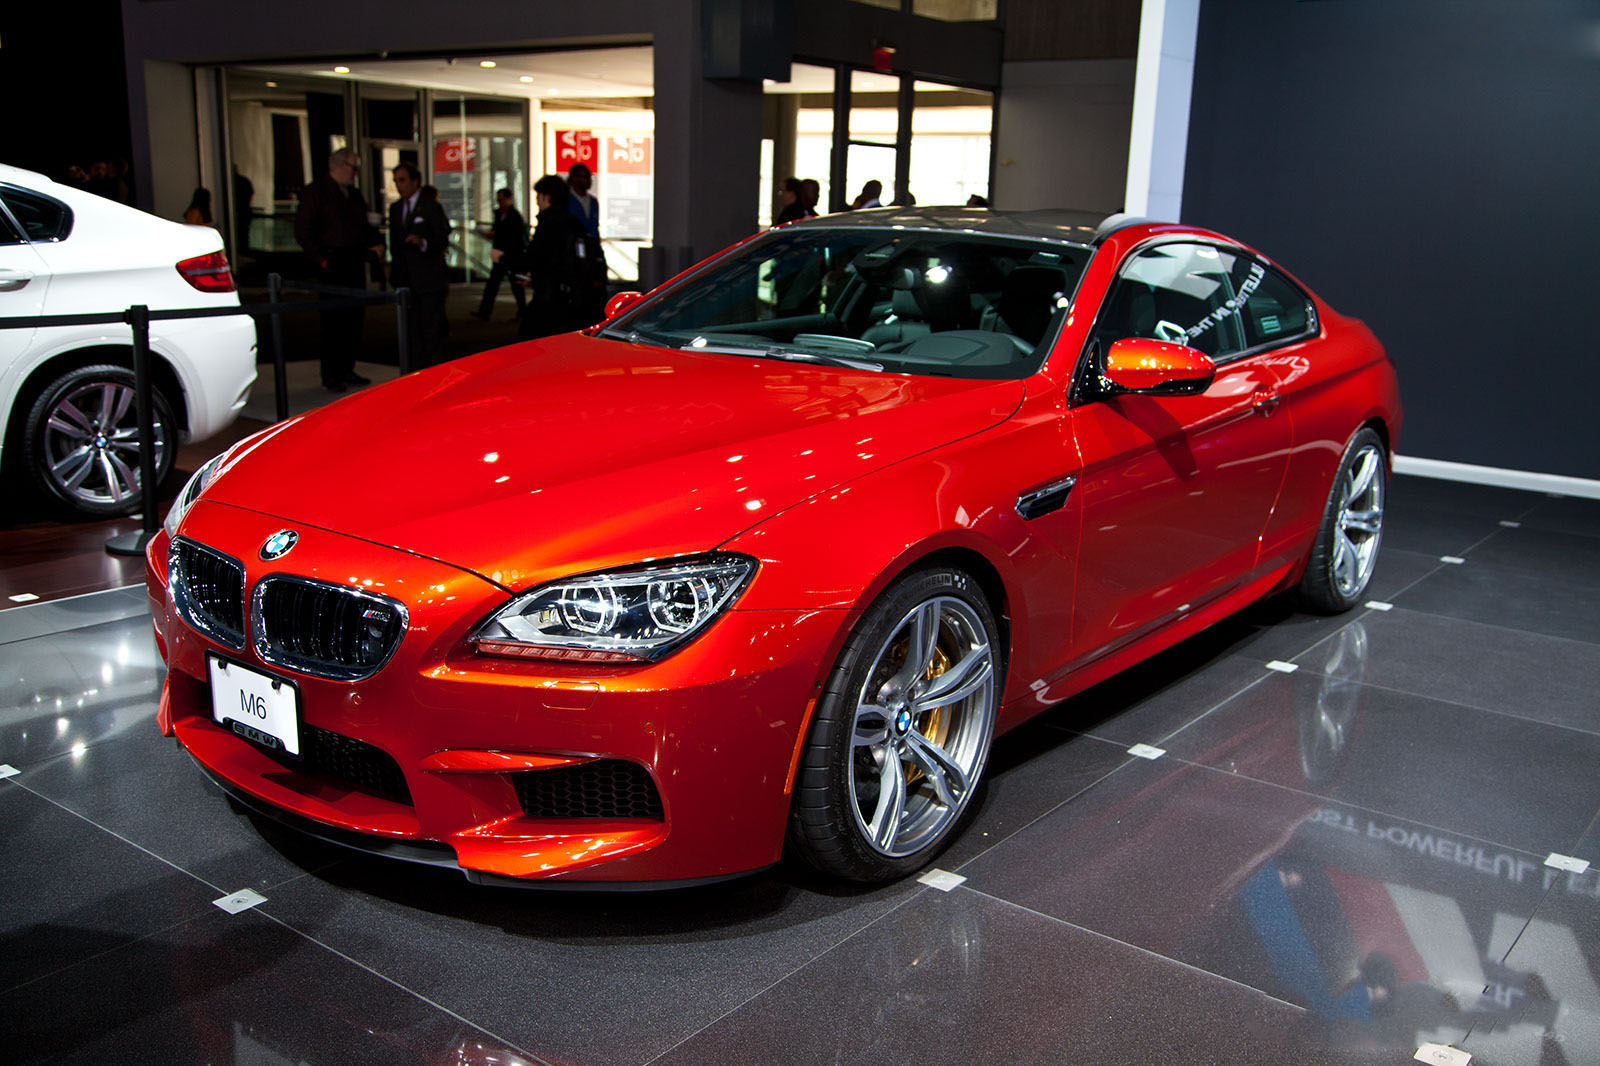 auto 2013 BMW M6 Coupe